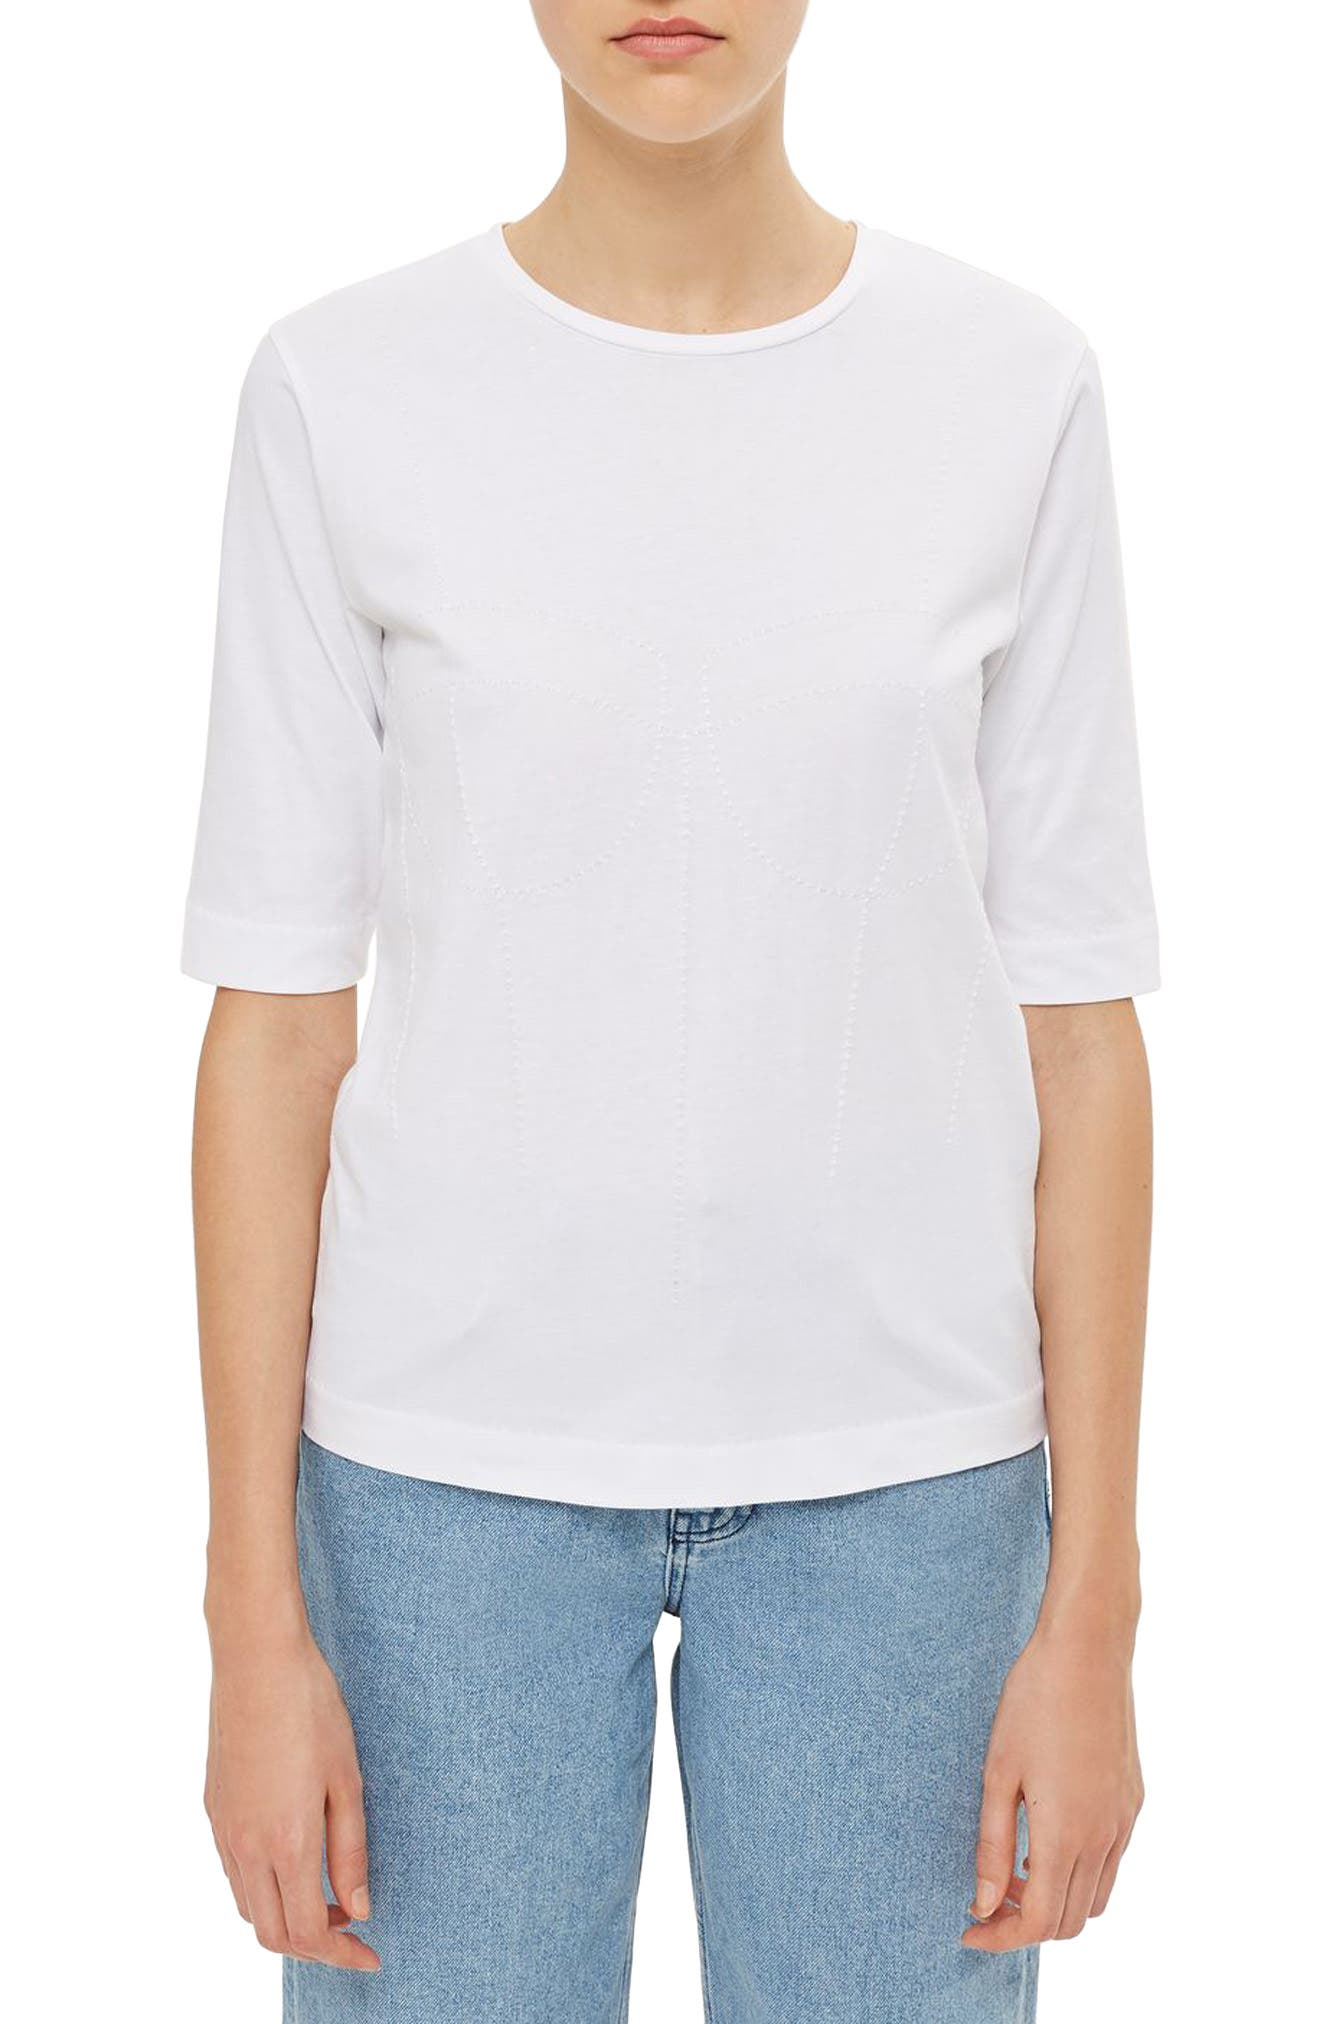 Topshop Boutique Topstitch Tee